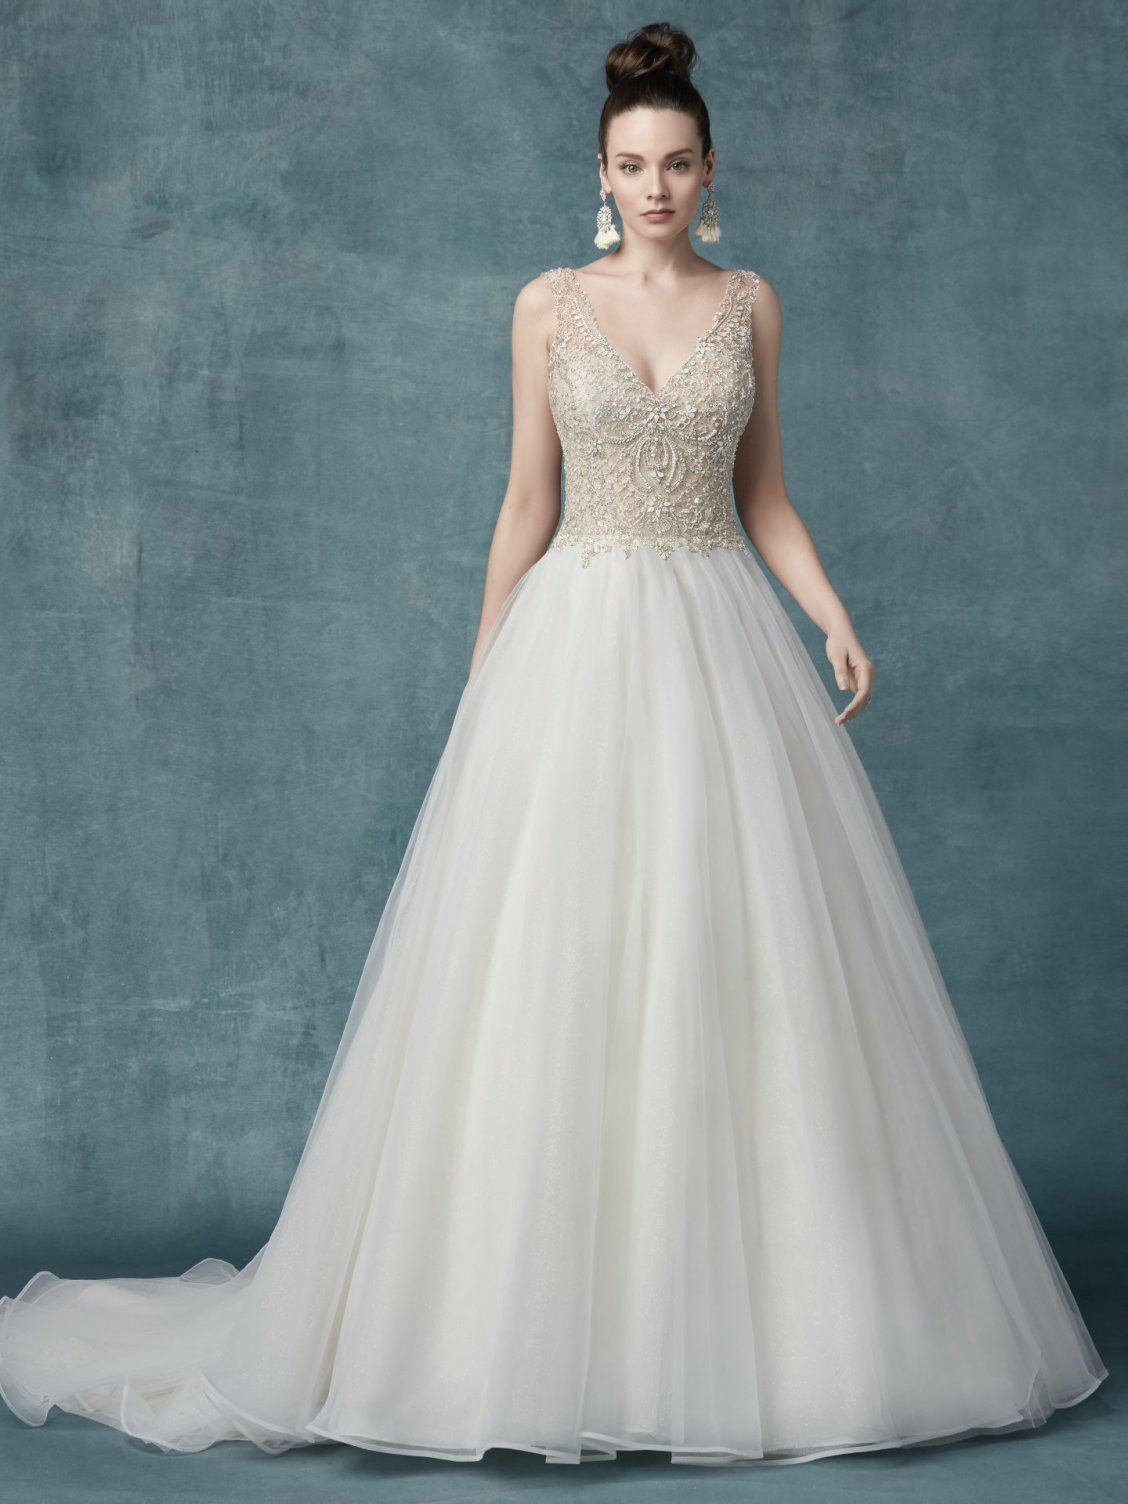 9f57701f0c  SophroniaMarie Glamorous princess wedding dress features a sheer bodice  accented in vintage-inspired beading and Swarovski crystals!  maggiesottero  ...